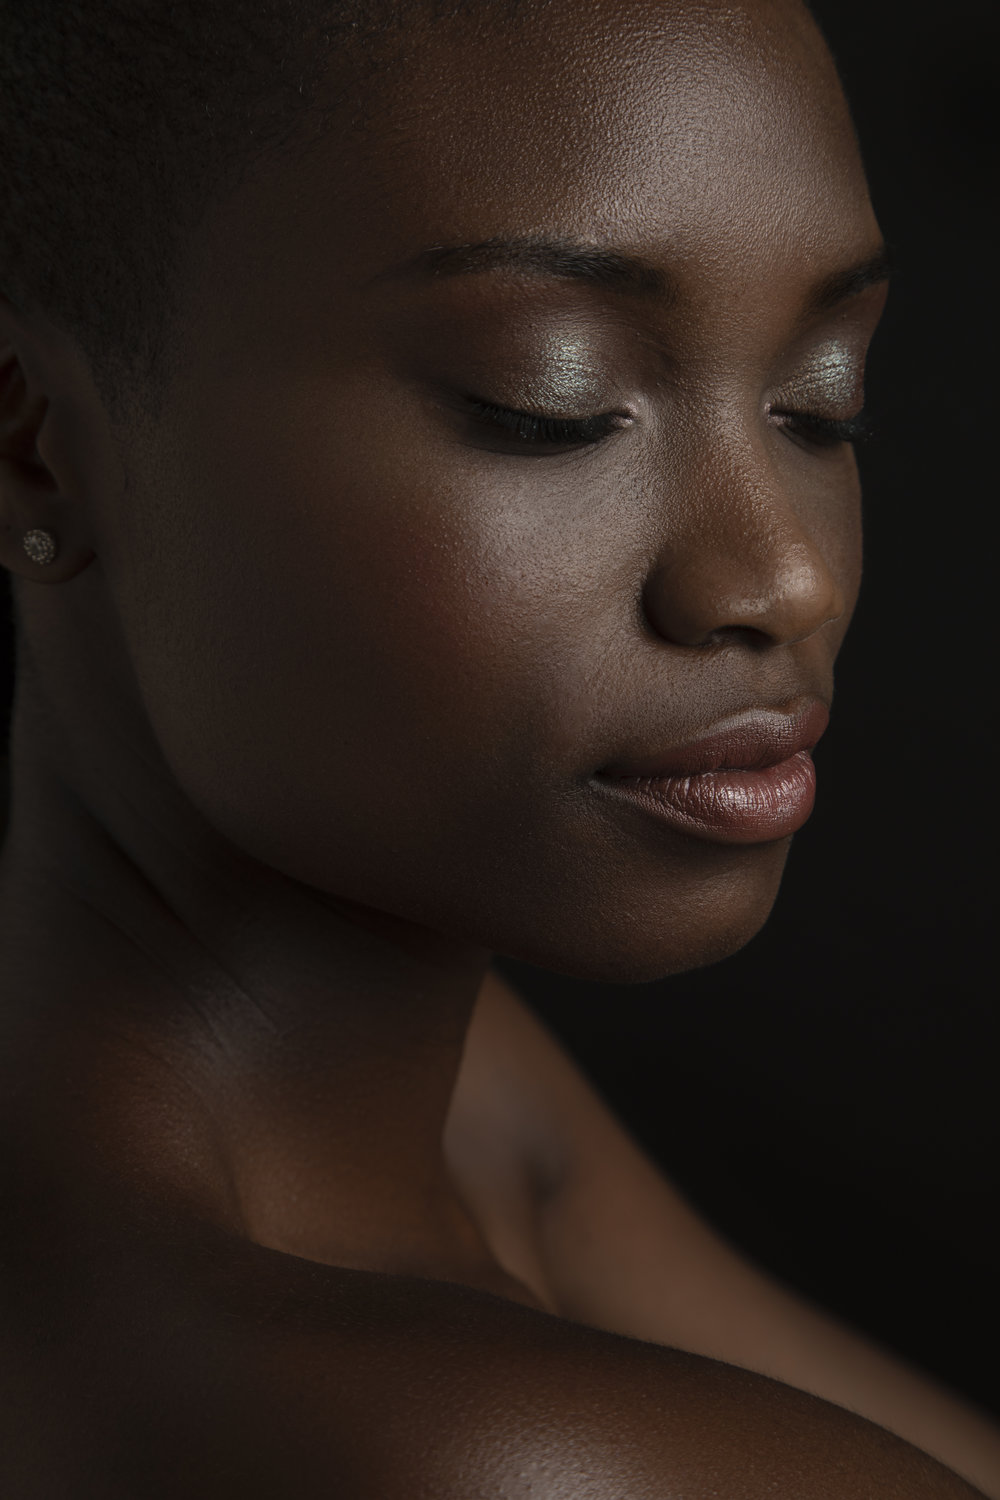 April_Staso_Los_Angeles_beauty_Photographer_LA_beauty_photography_Melanin_beauty_portraits_mac_cosmetics_portraiture_5.jpg